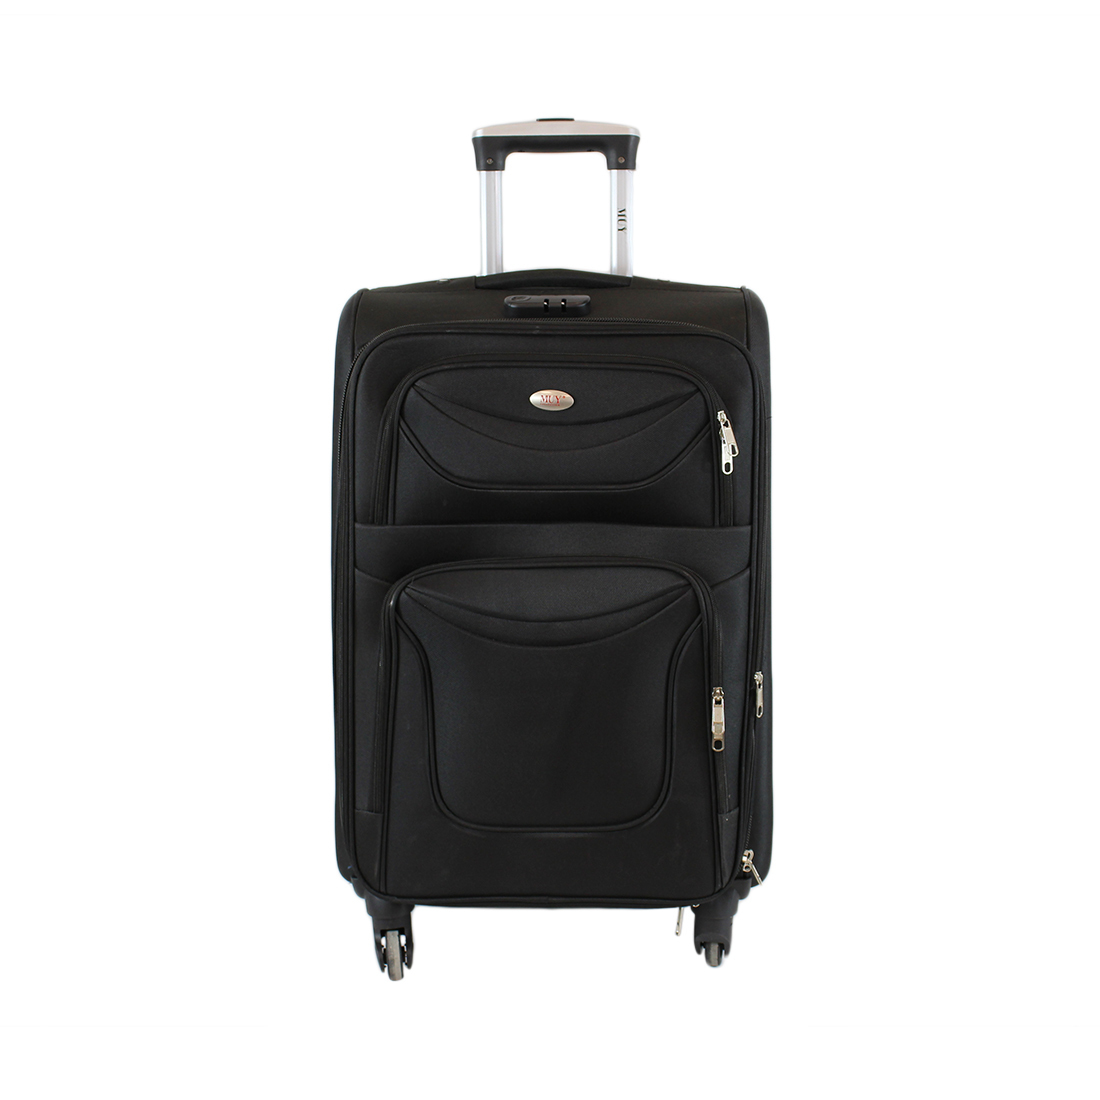 Textile Luggage with 4 wheels